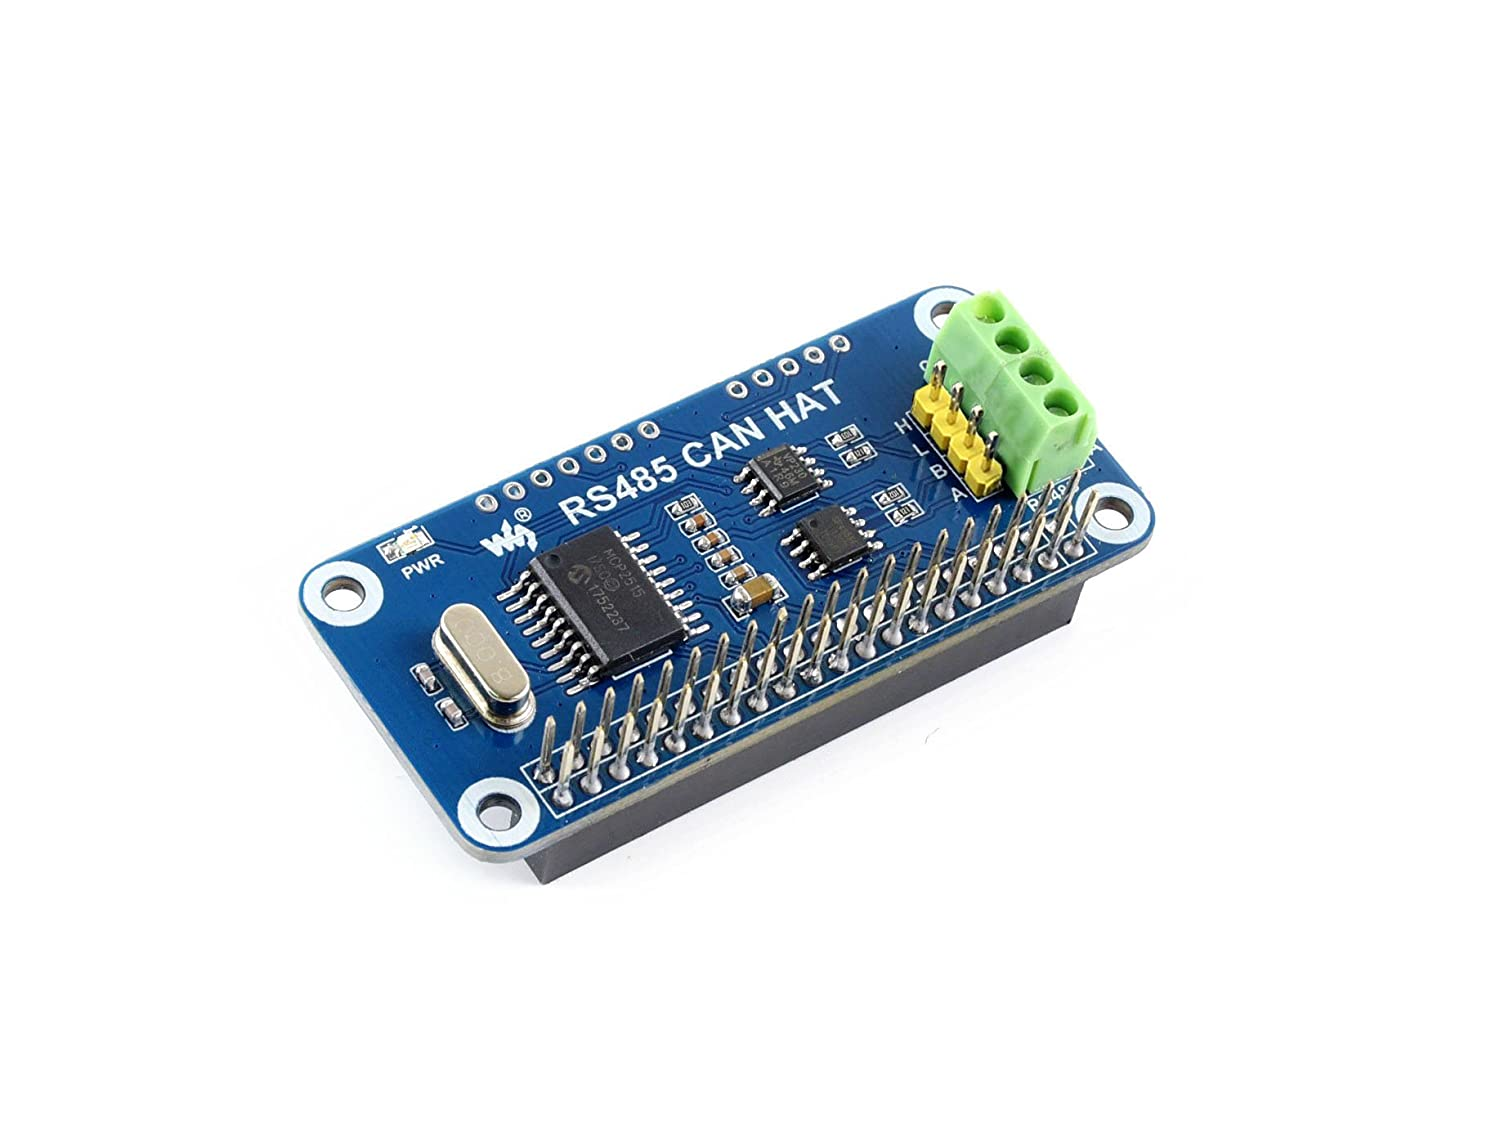 Waveshare Rs485 Can Hat For Raspberry Pi Function And Wiringpi Python On Board Allows To Communicate With Other Devices Stably In Long Distance